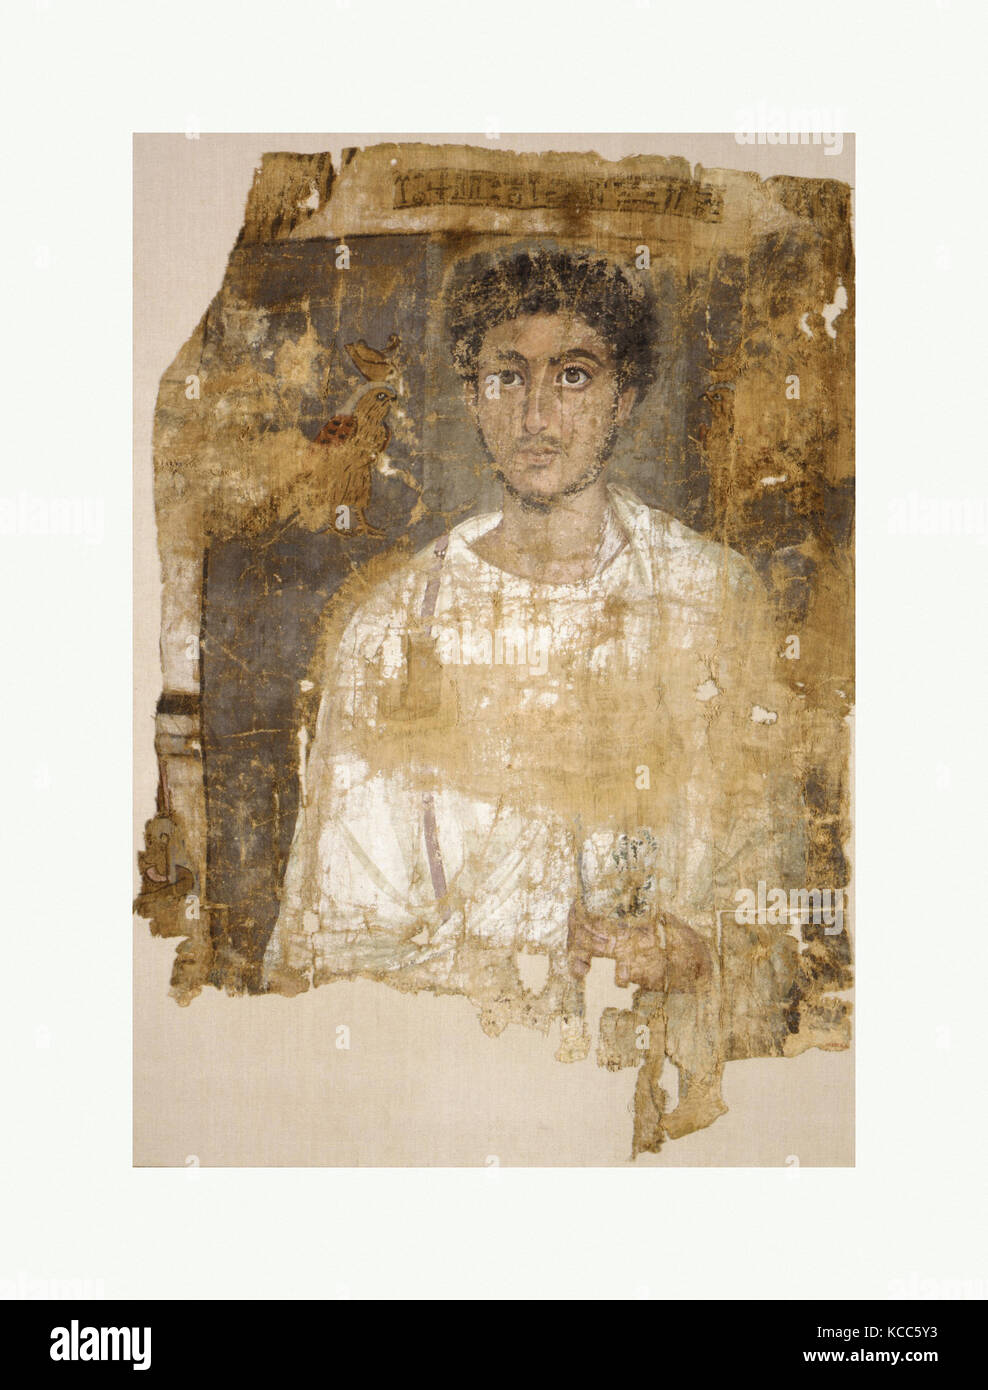 Fragmentary Shroud with a Bearded Young Man, A.D. 120–150 - Stock Image